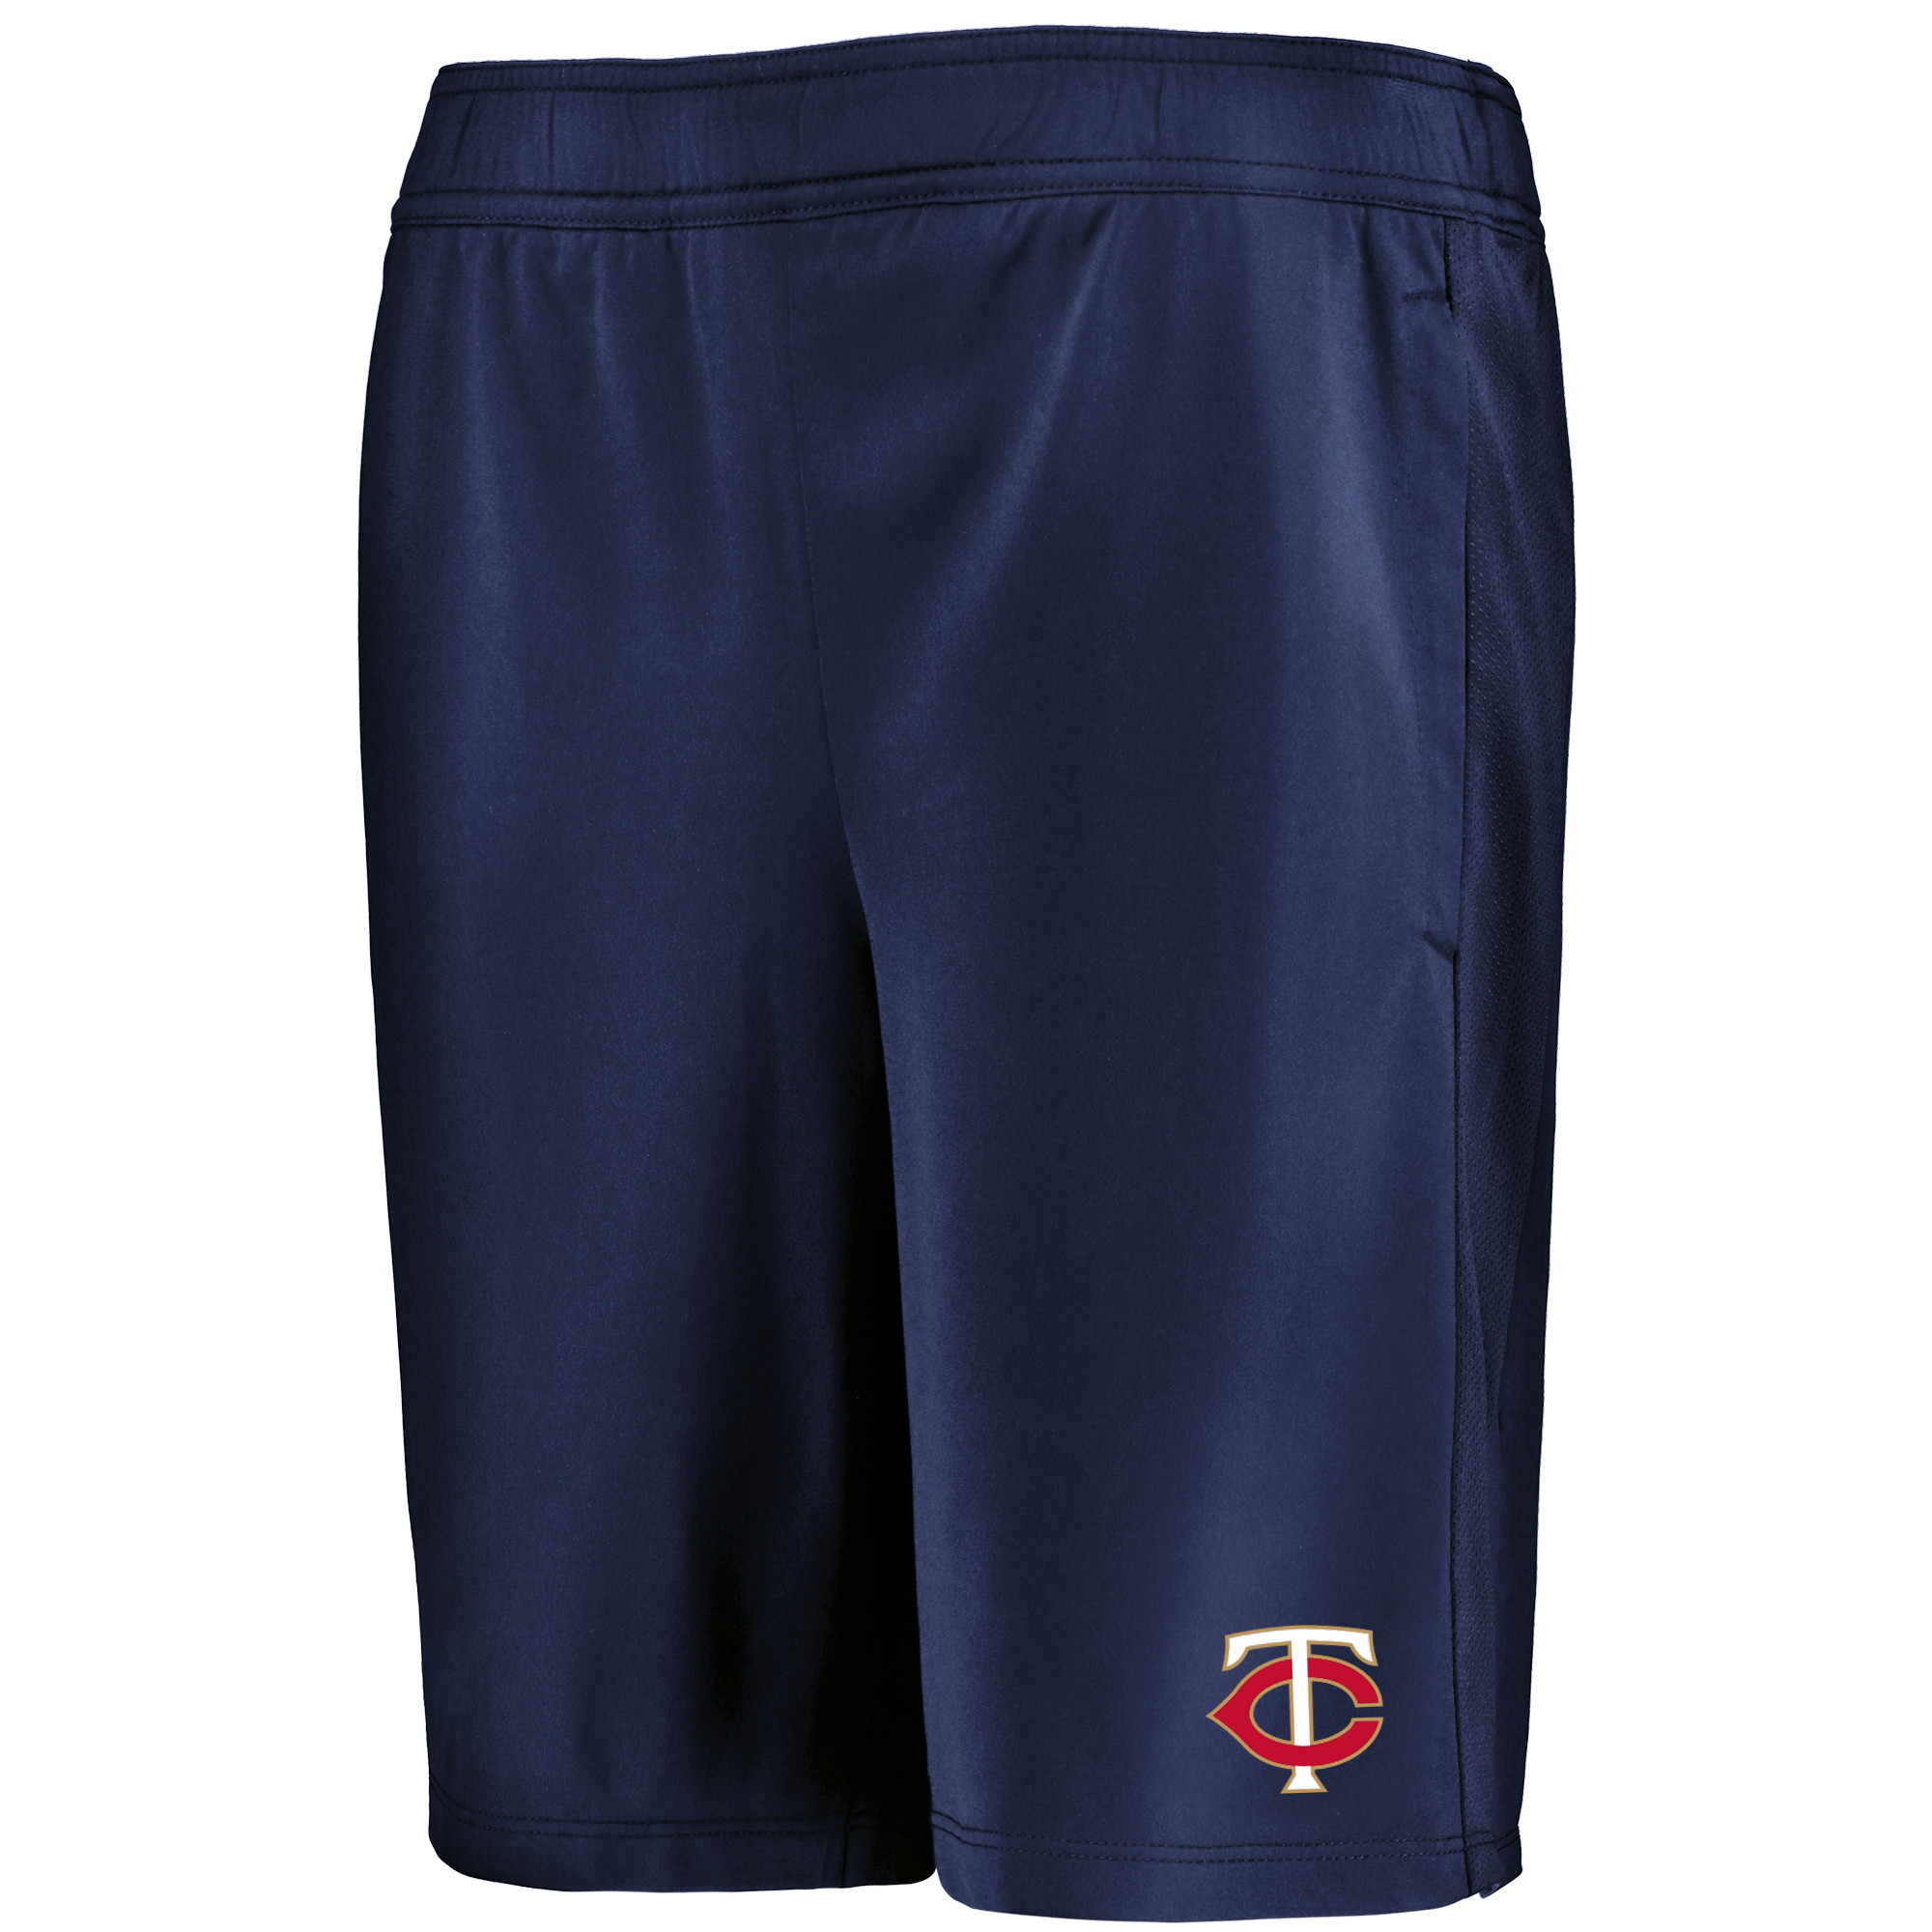 Minnesota Twins Under Armour Youth MK-1 Performance Shorts - Navy